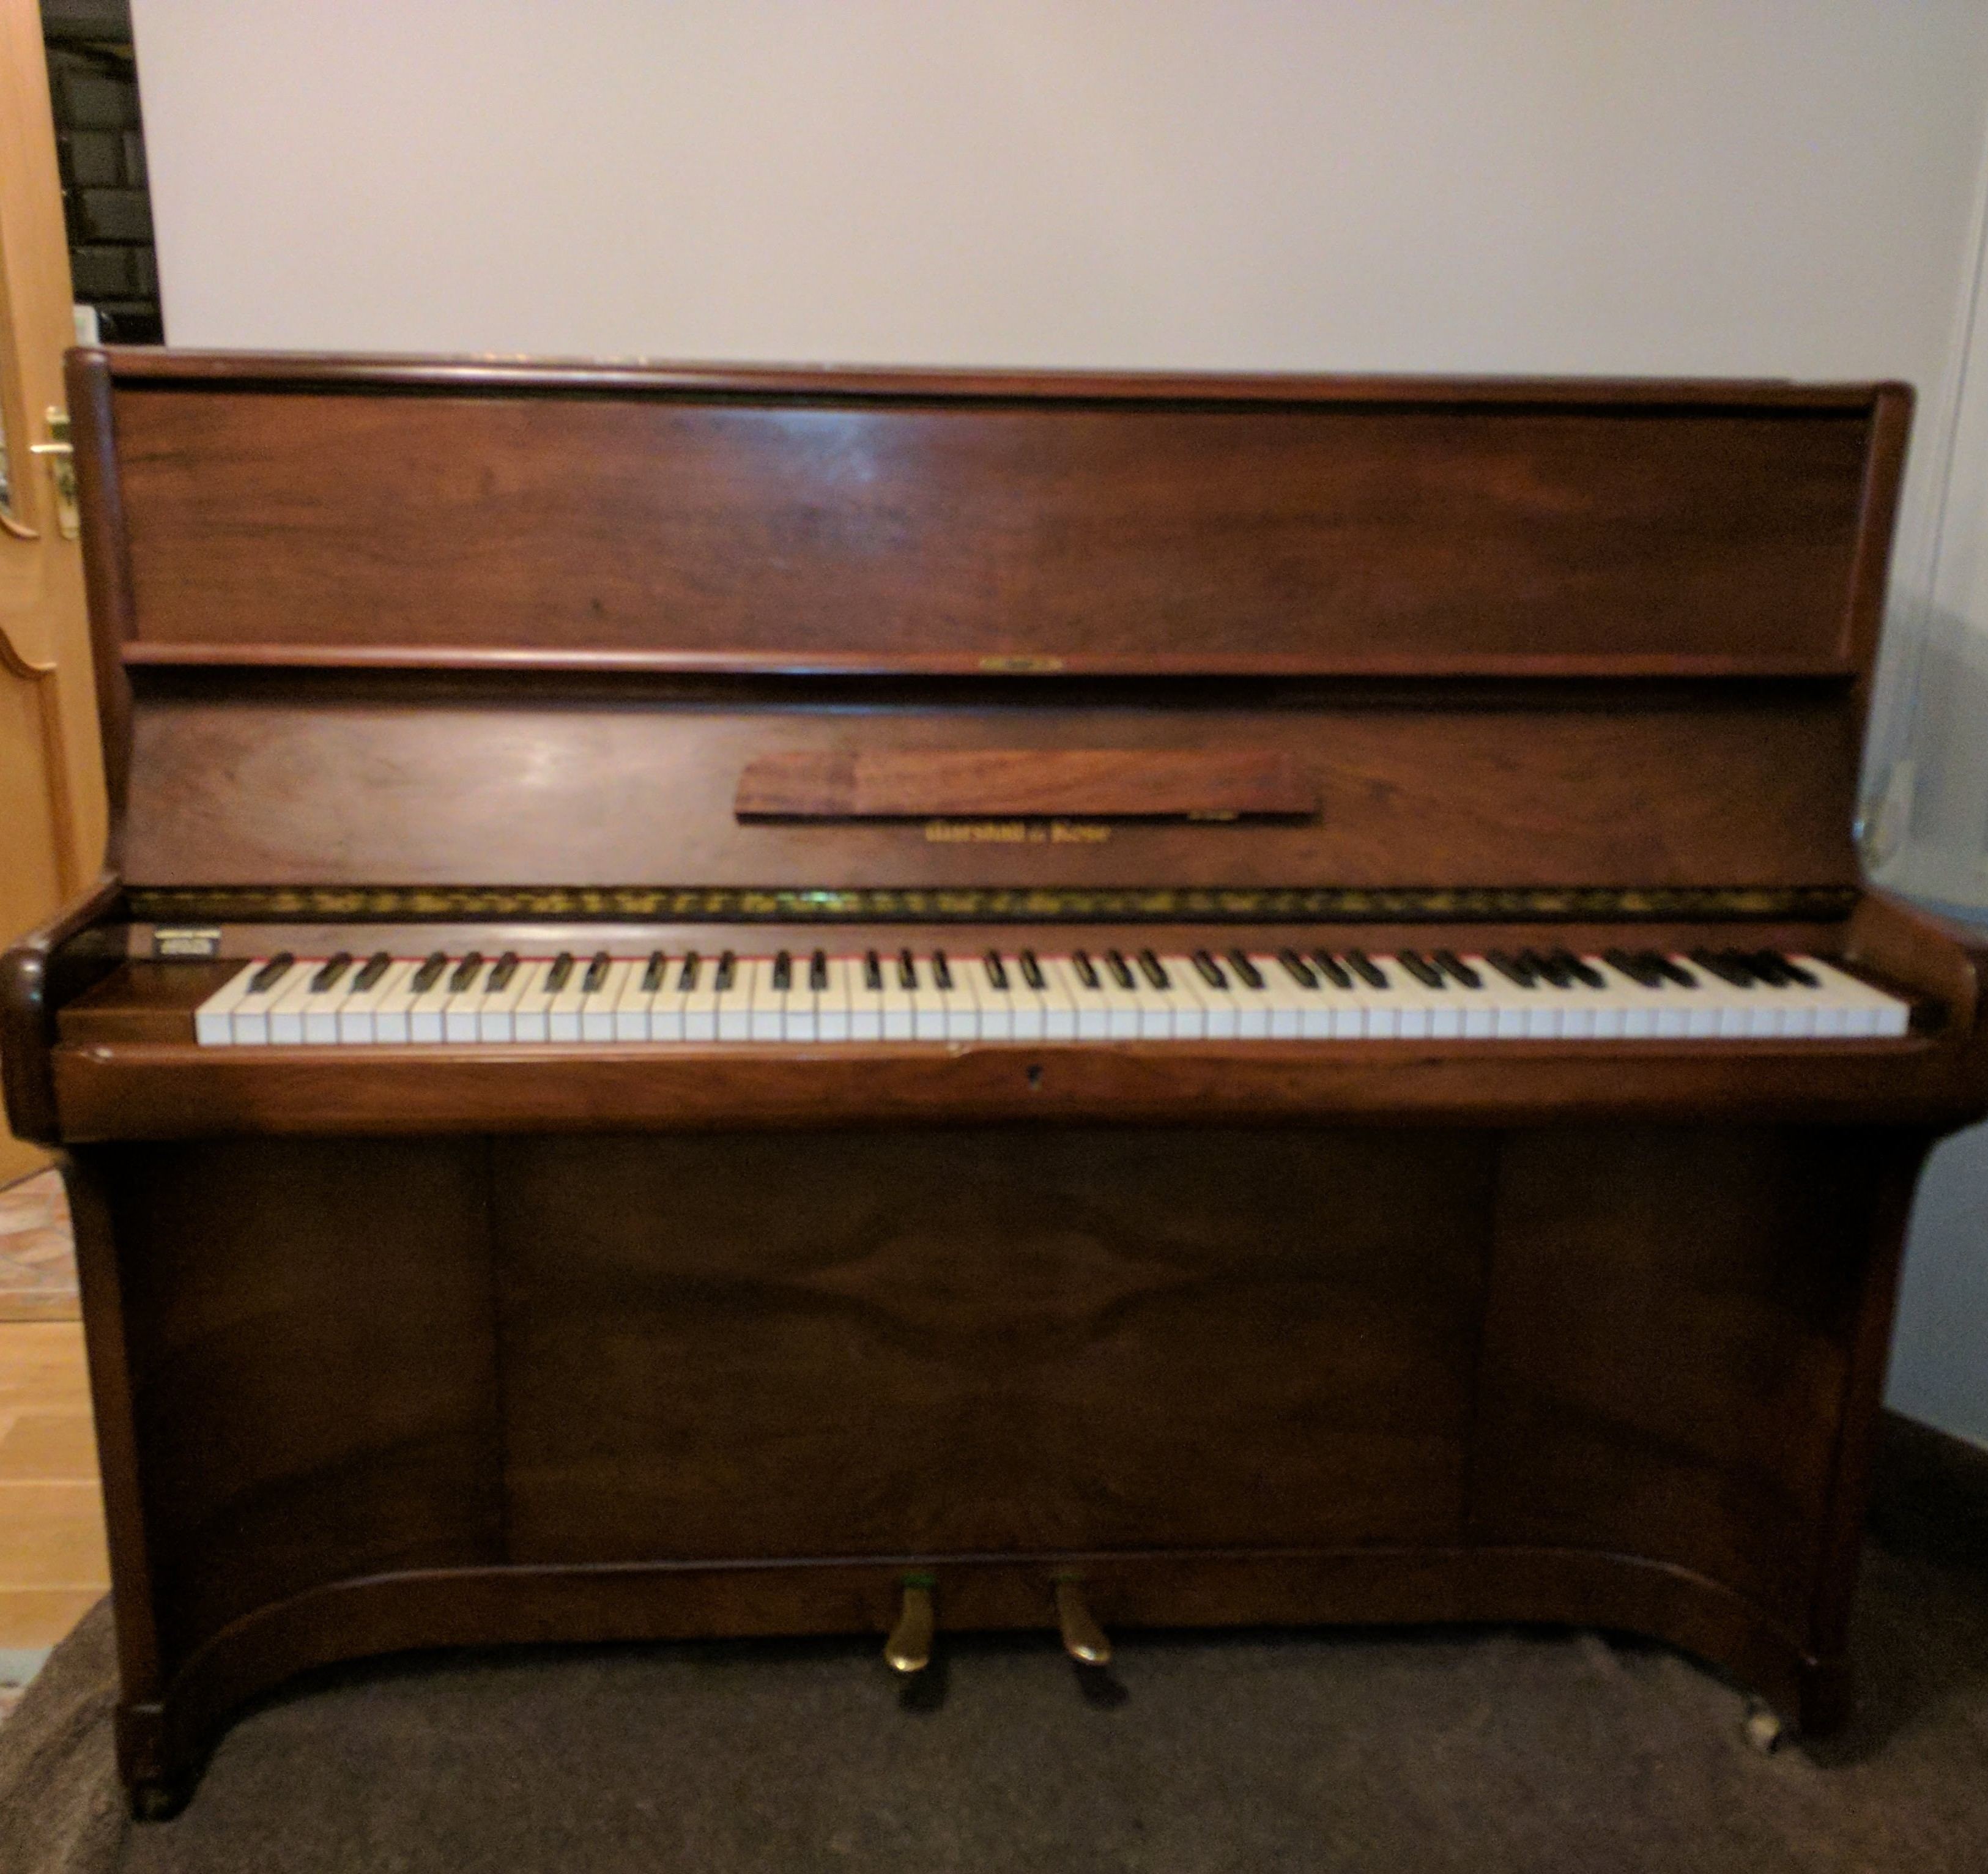 Marshall and Rose Upright Piano